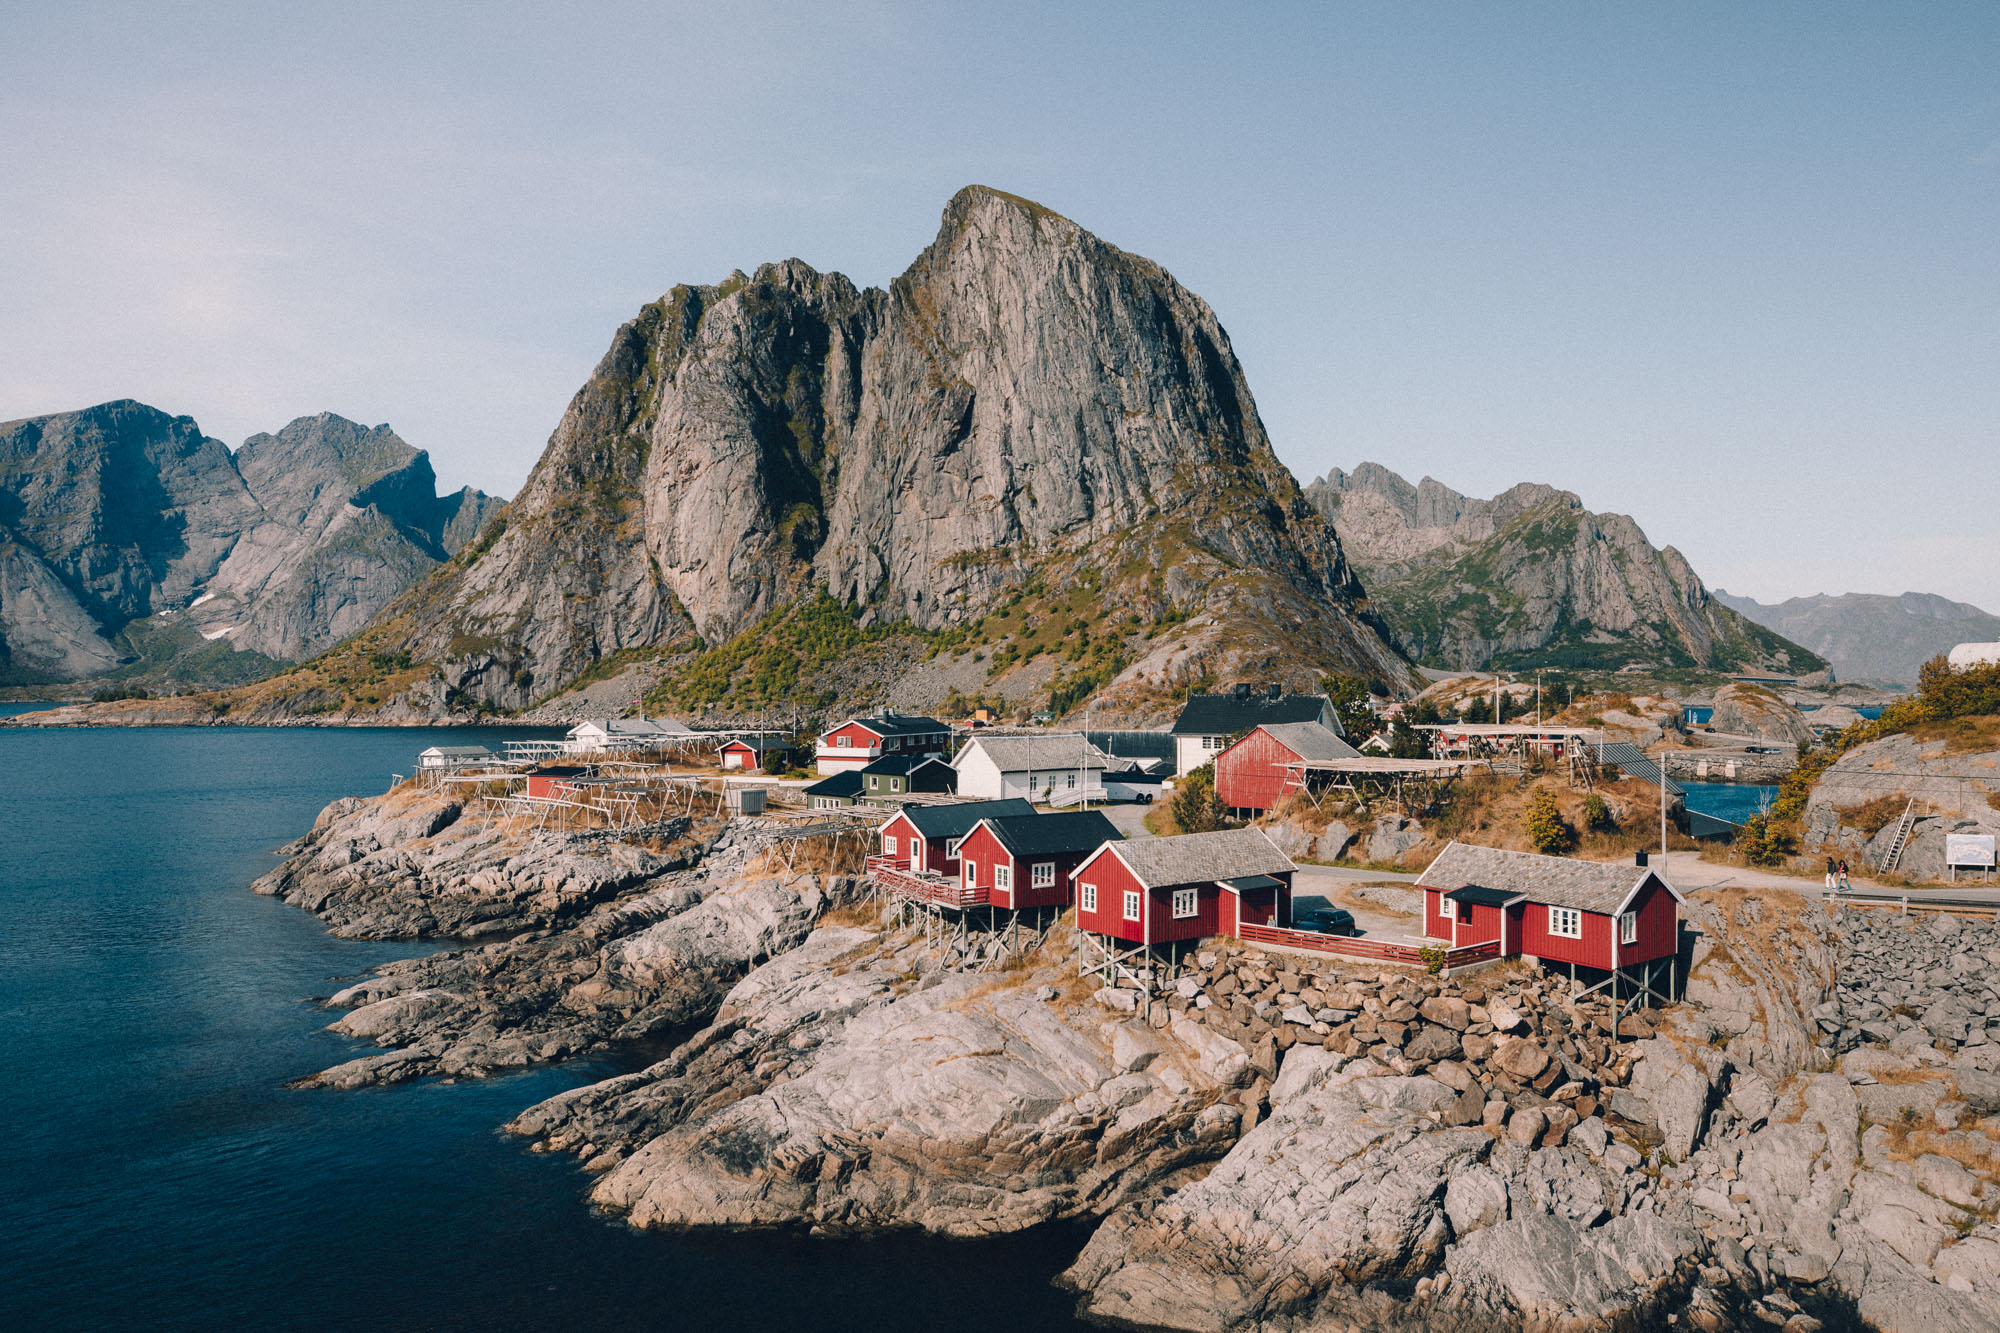 Famous viewpoint red houses on the water with rocks in Hamnoy, Lofoten, Norway